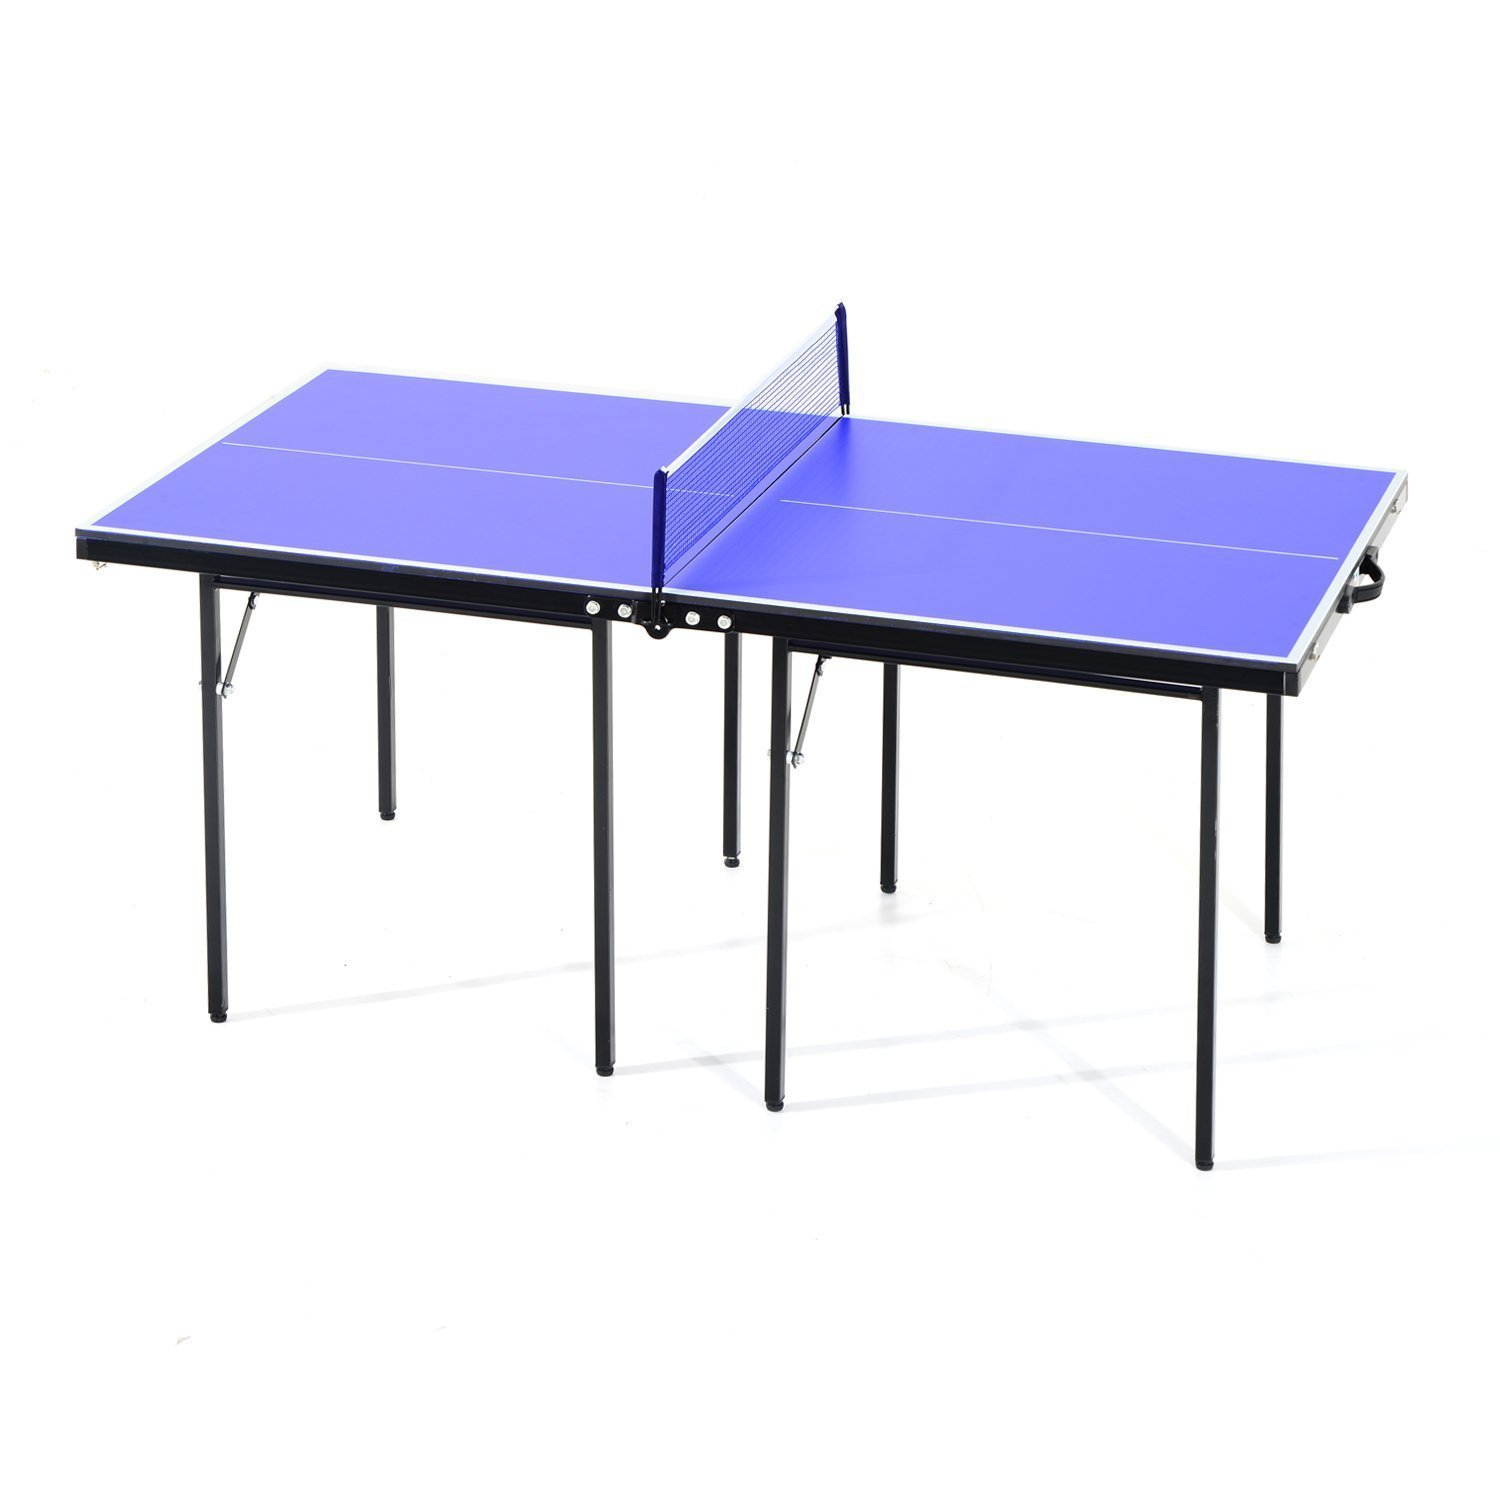 HOMCOM Ping Pong Table Folding Wood MDF 153x76.5x67 Cm Blue And Black